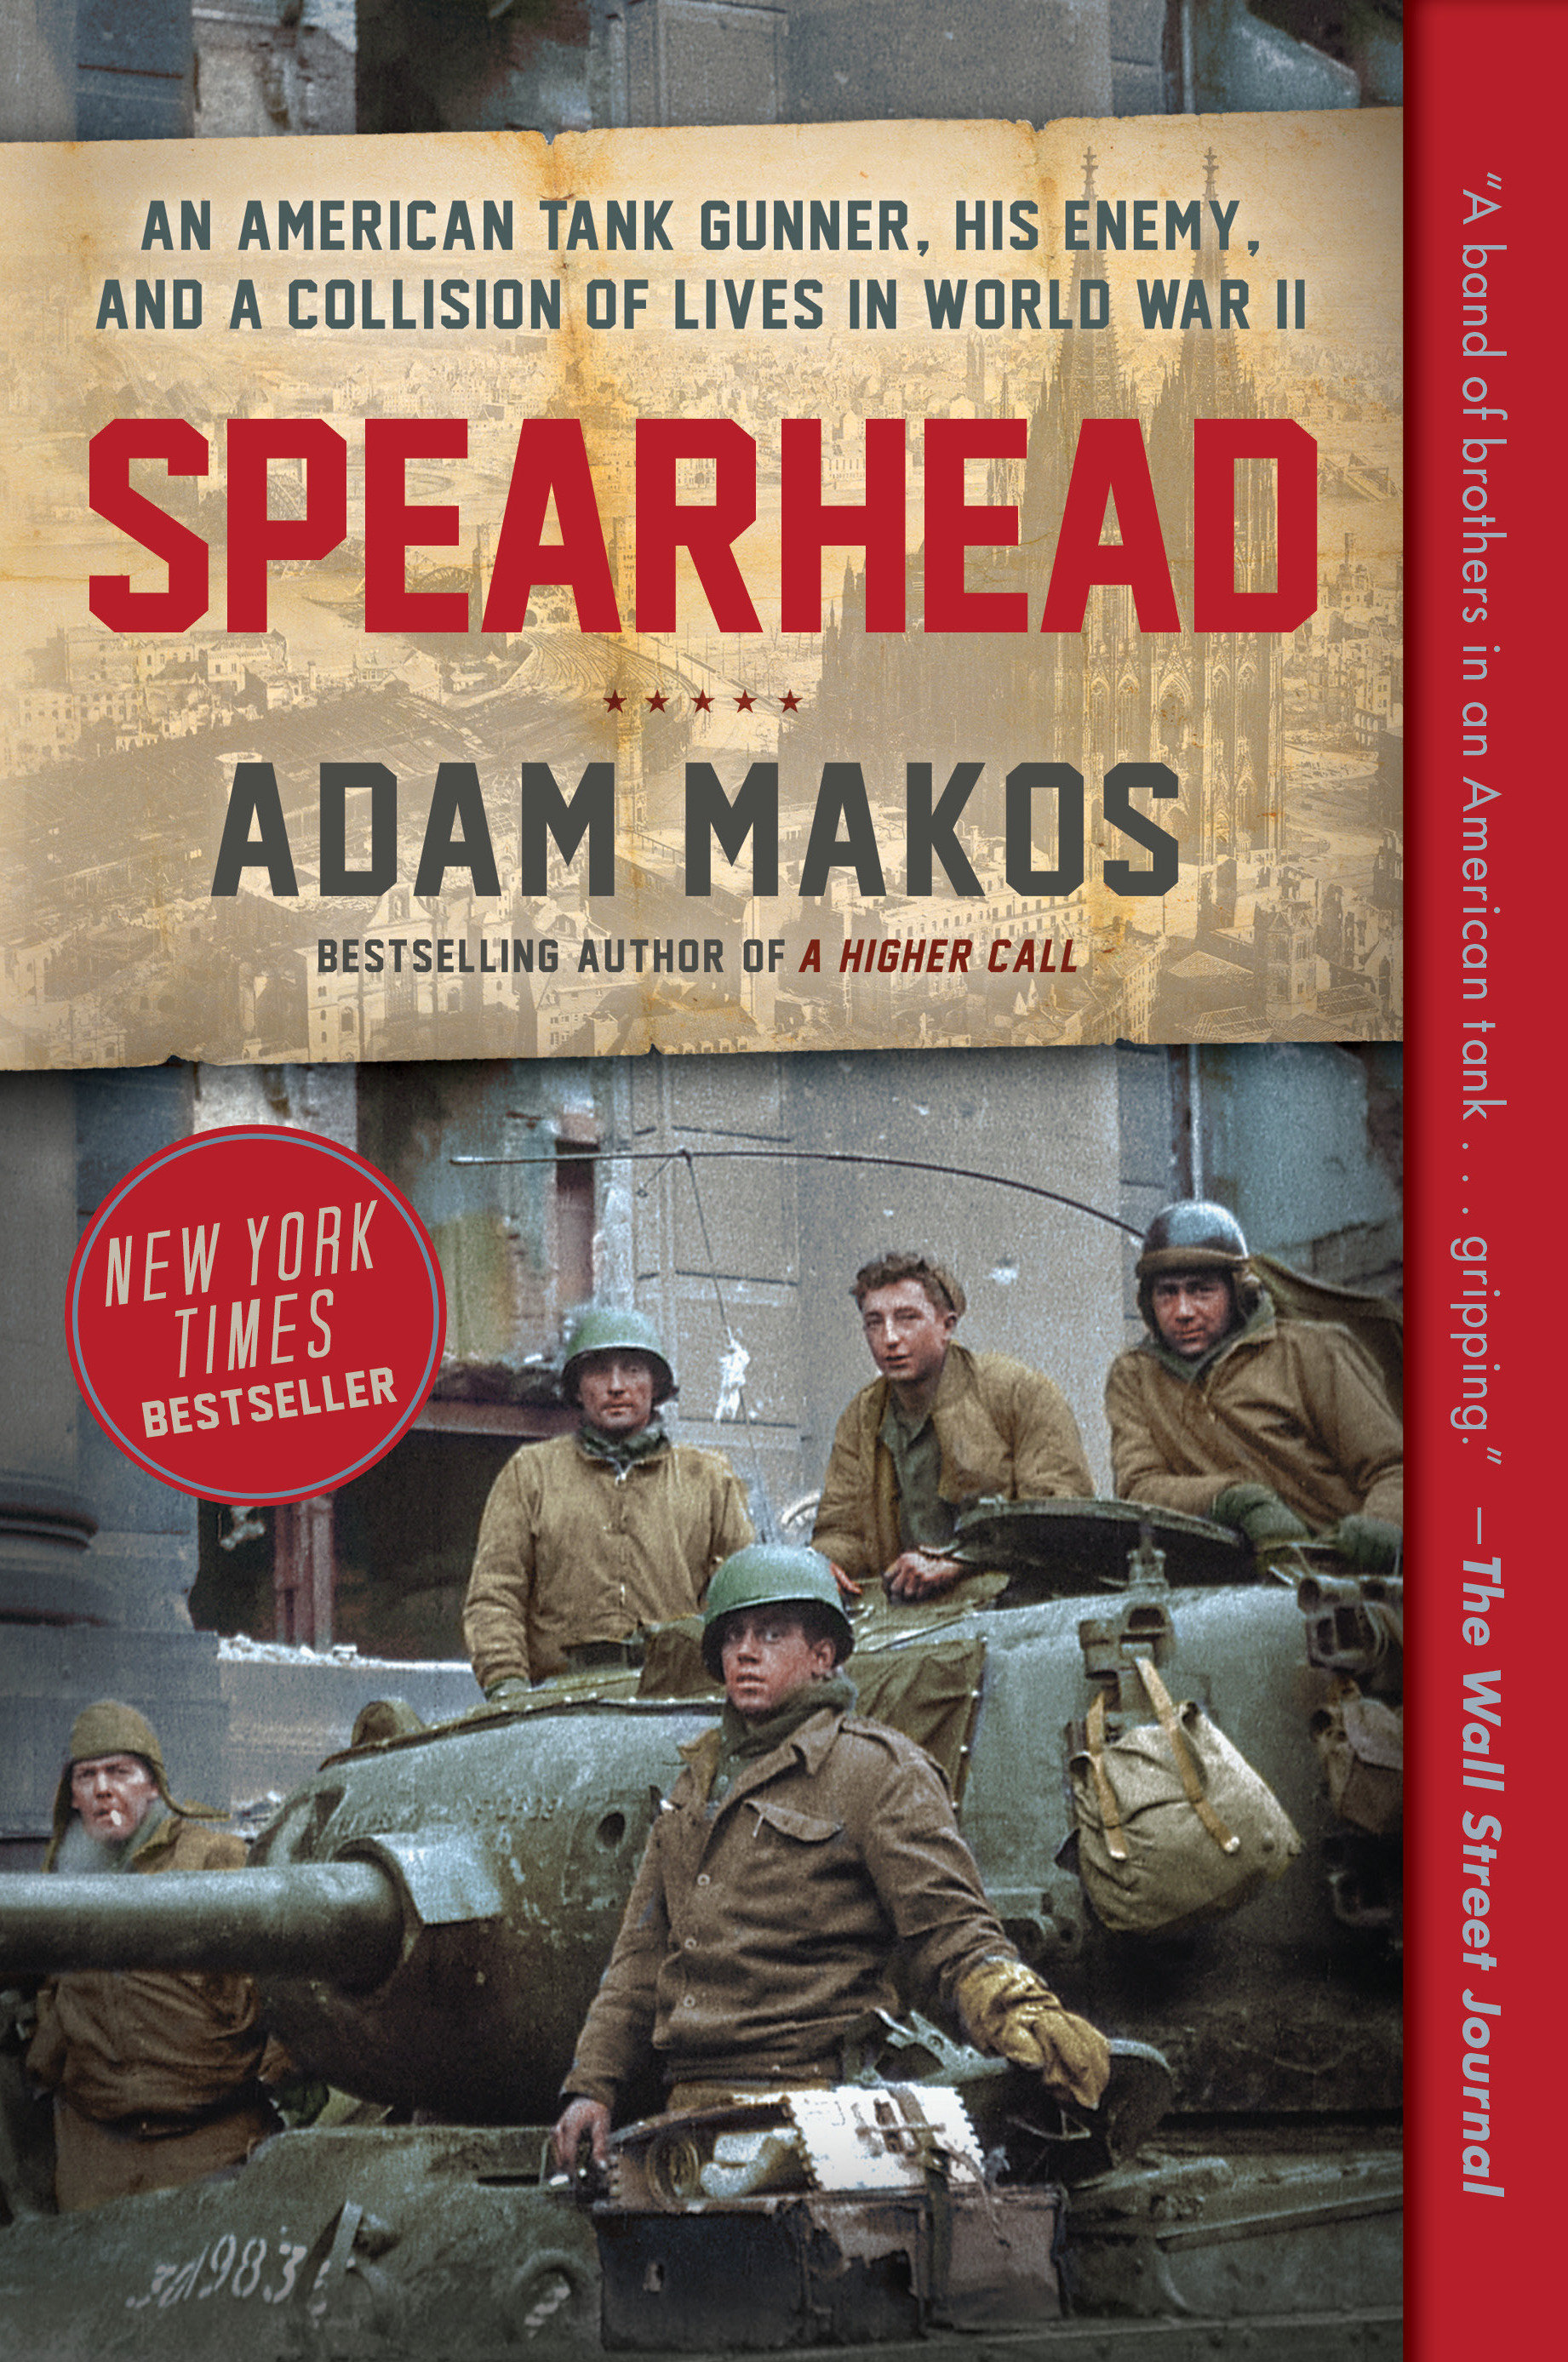 Spearhead An American Tank Gunner, His Enemy, and a Collision of Lives in World War II